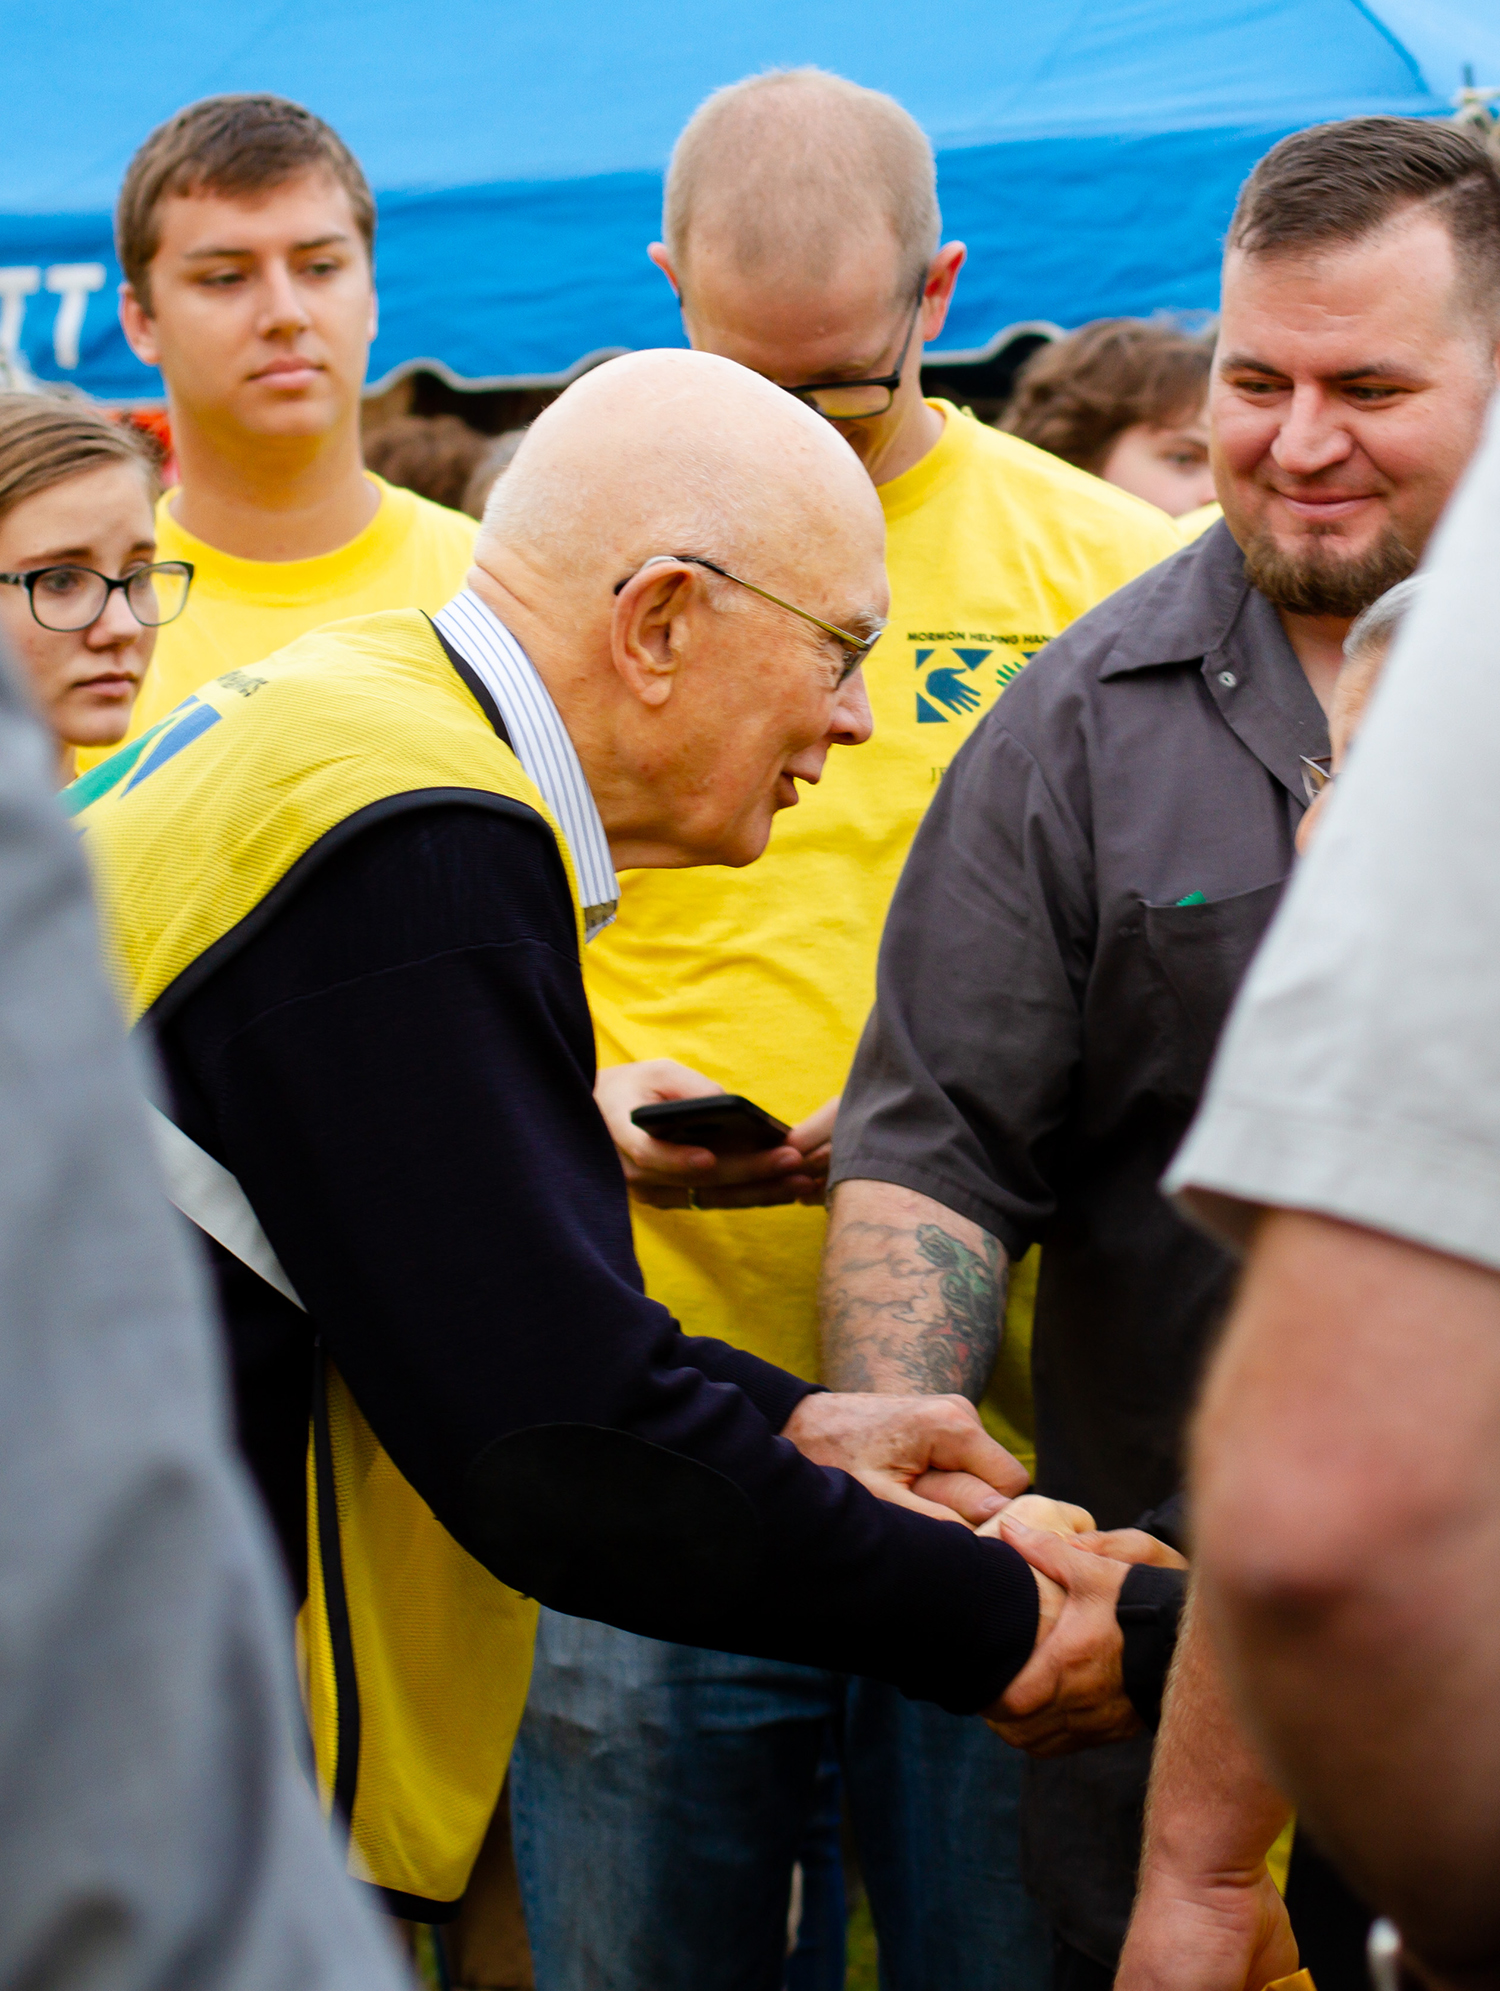 President Dallin H. Oaks, first counselor in the First Presidency, greets and man after traveling to Florida and North Carolina this weekend to meet with Latter-day Saints and residents impacted by Hurricane Florence.